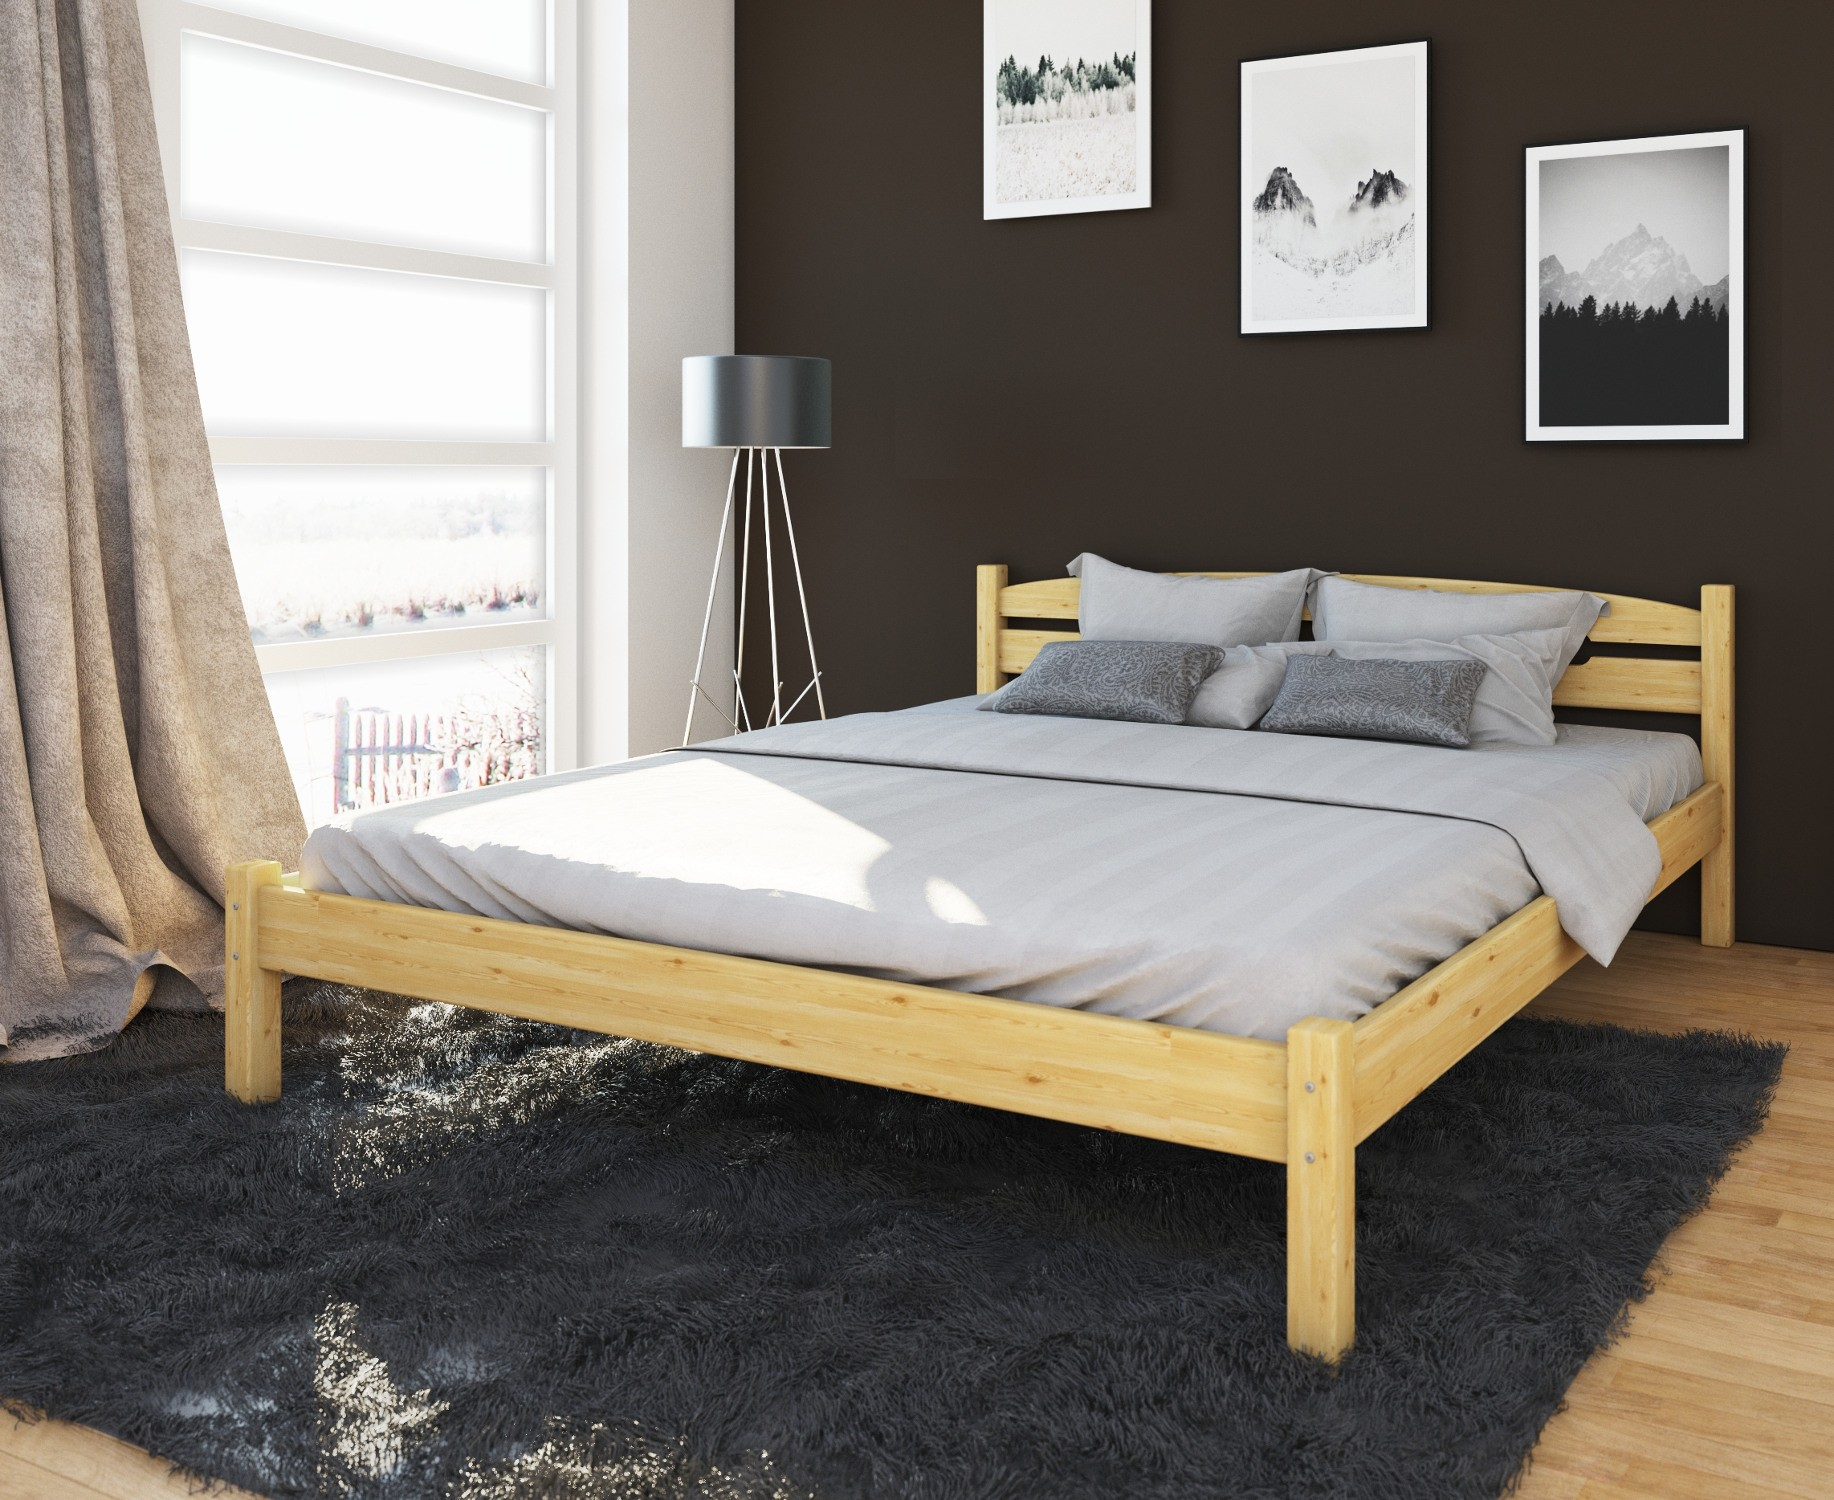 bett doppelbett veton liegefl che 180 x 200 cm. Black Bedroom Furniture Sets. Home Design Ideas